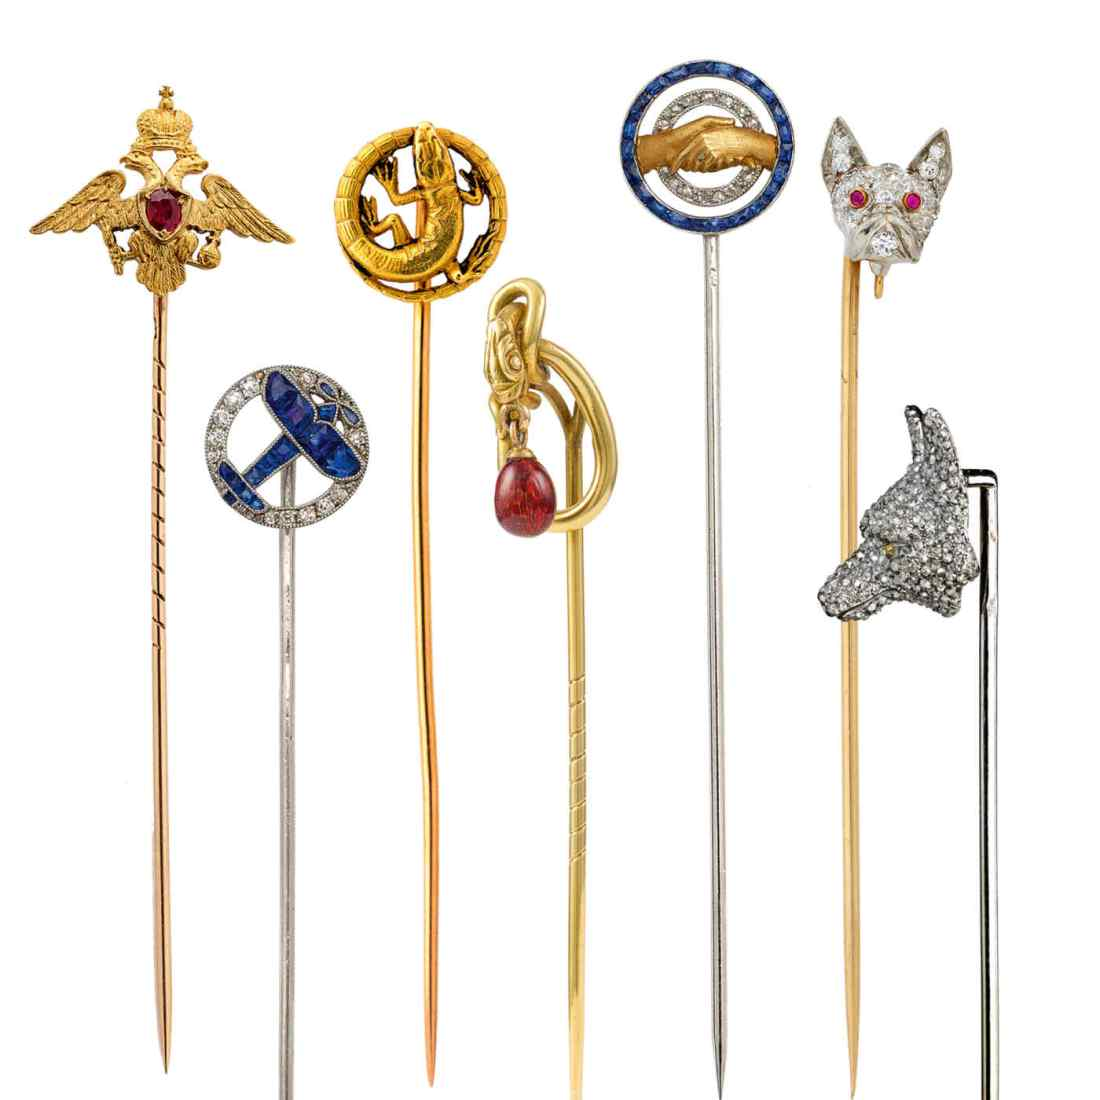 Vintage tie and stick pins, ca. 1885-1910.